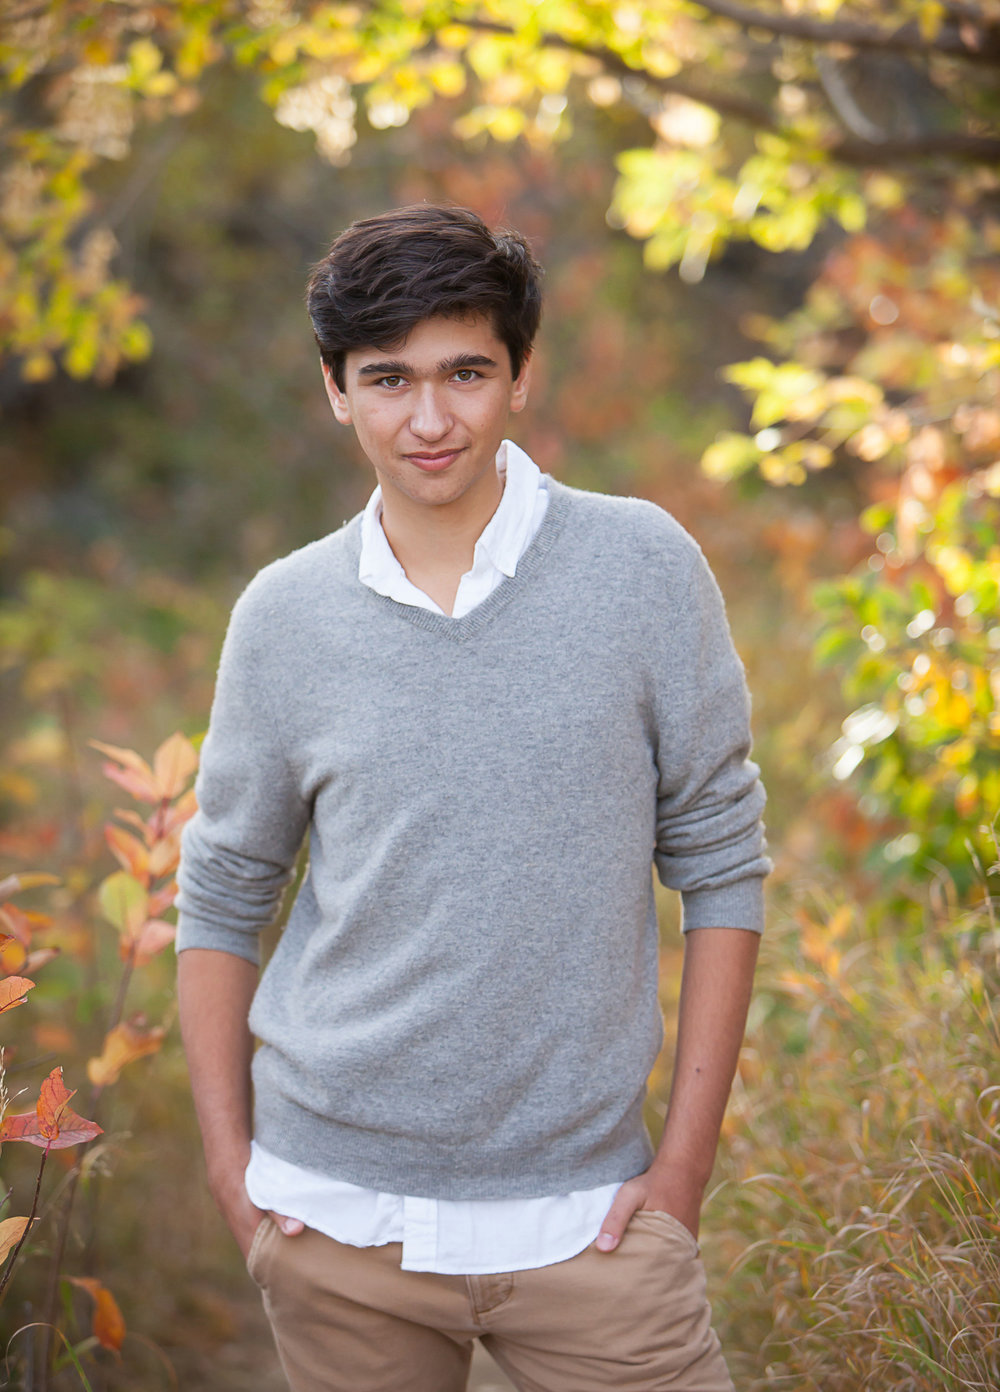 senior guy pictures in Denver mountains, photographer Jennifer Koskinen